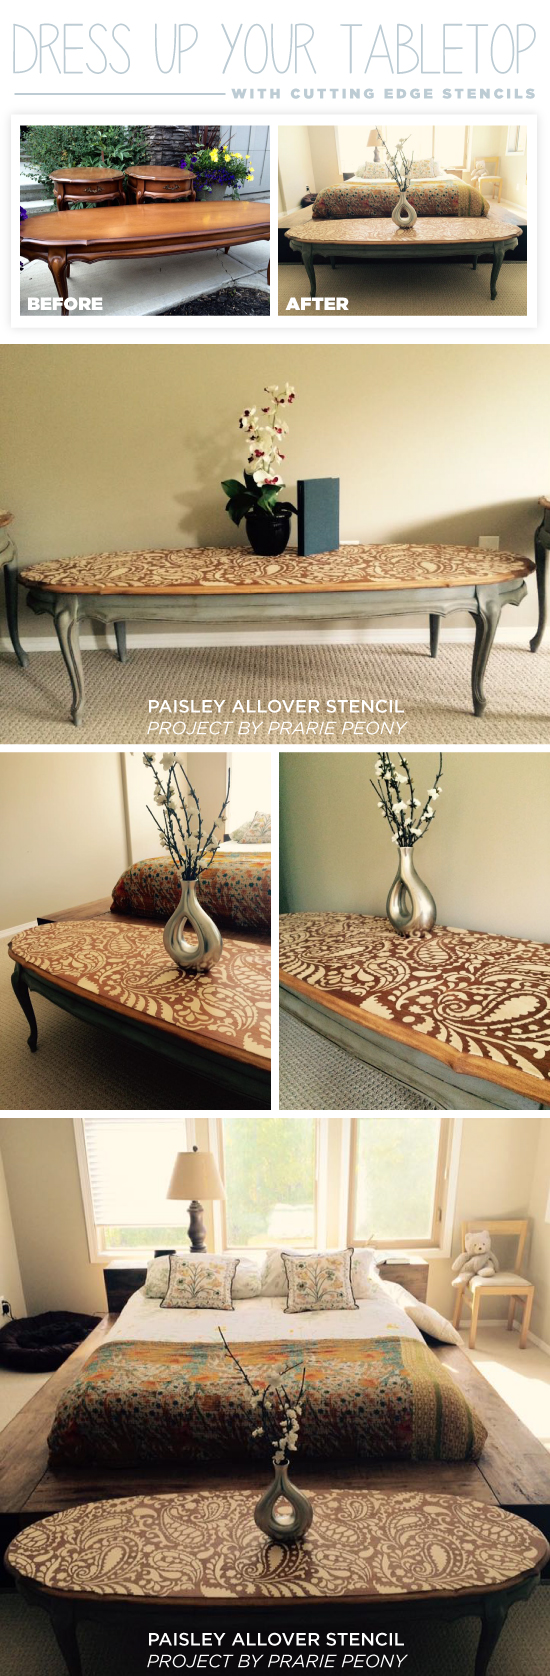 A DIY stenciled table using the Paisley Allover Stencil from Cutting Edge Stencils. http://www.cuttingedgestencils.com/paisley-allover-stencil.html